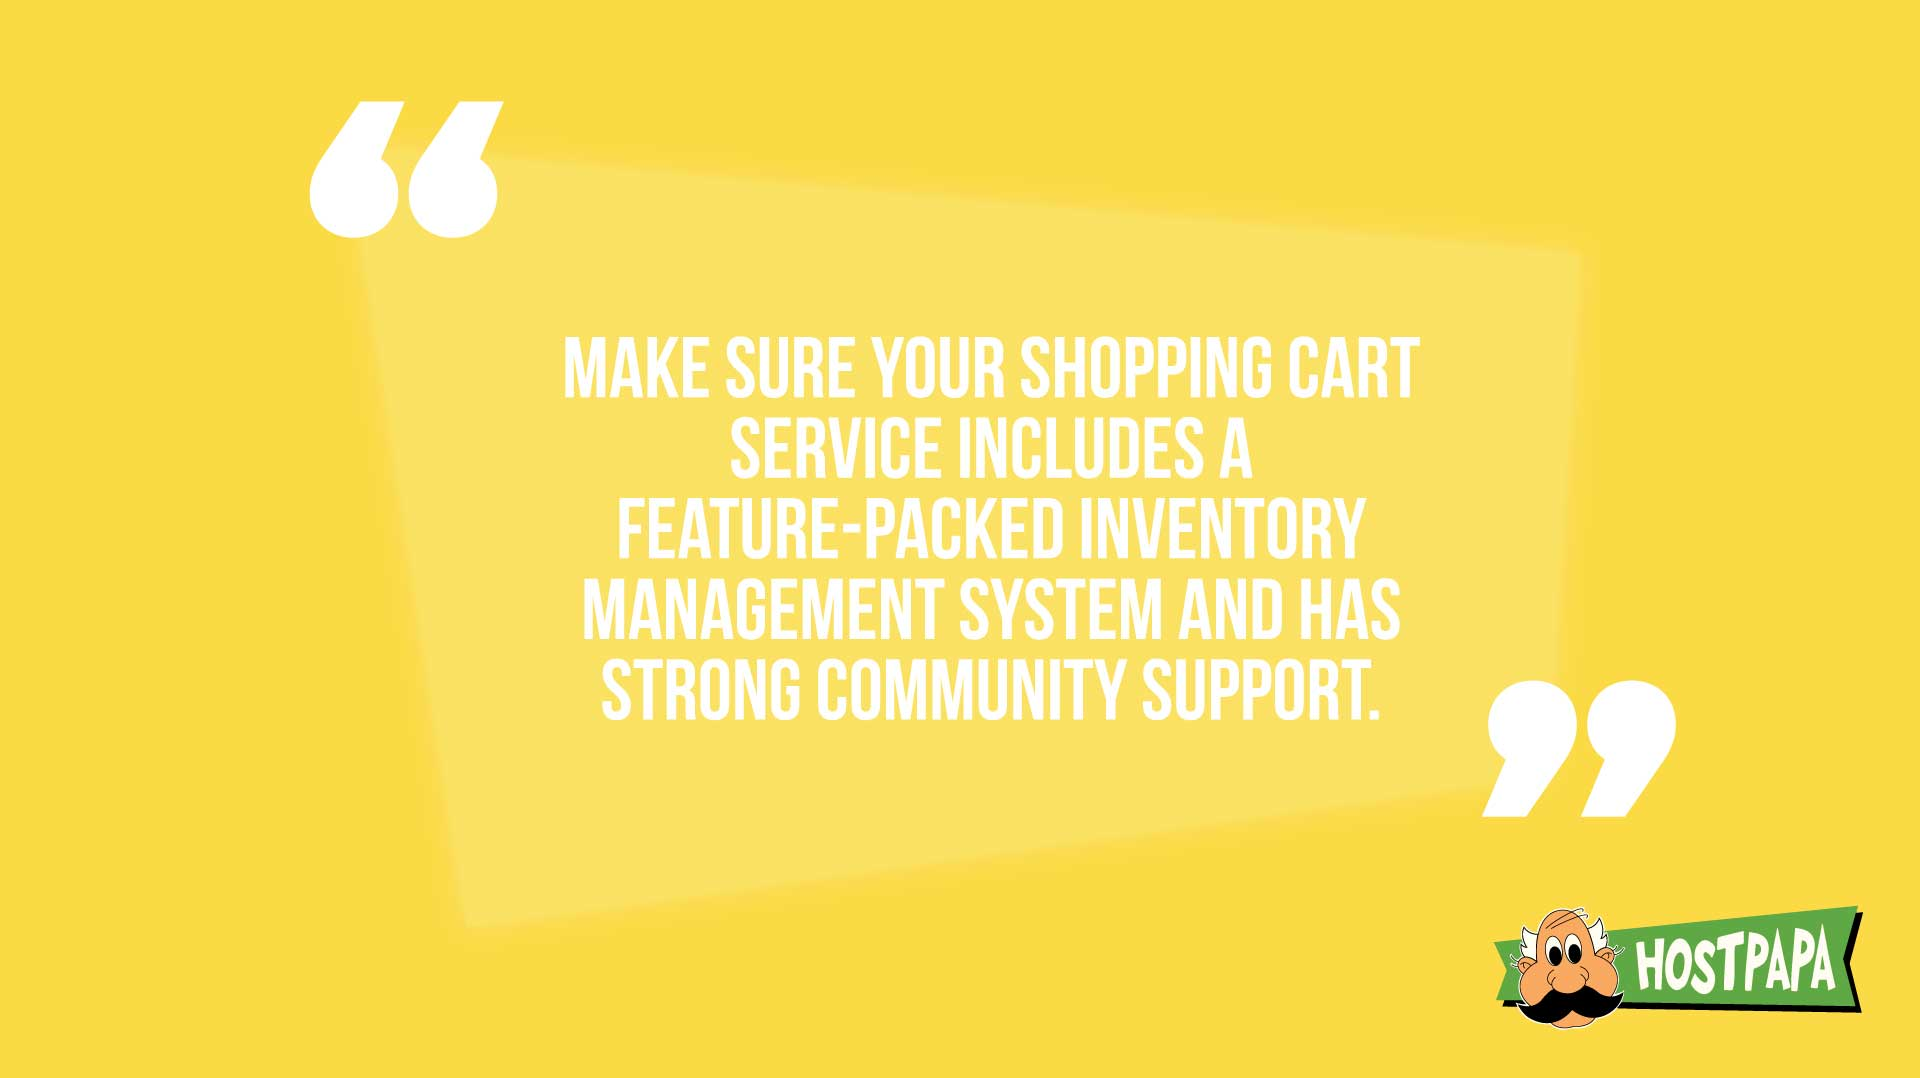 Make sure your shopping cart service includes a featured-packed inventory